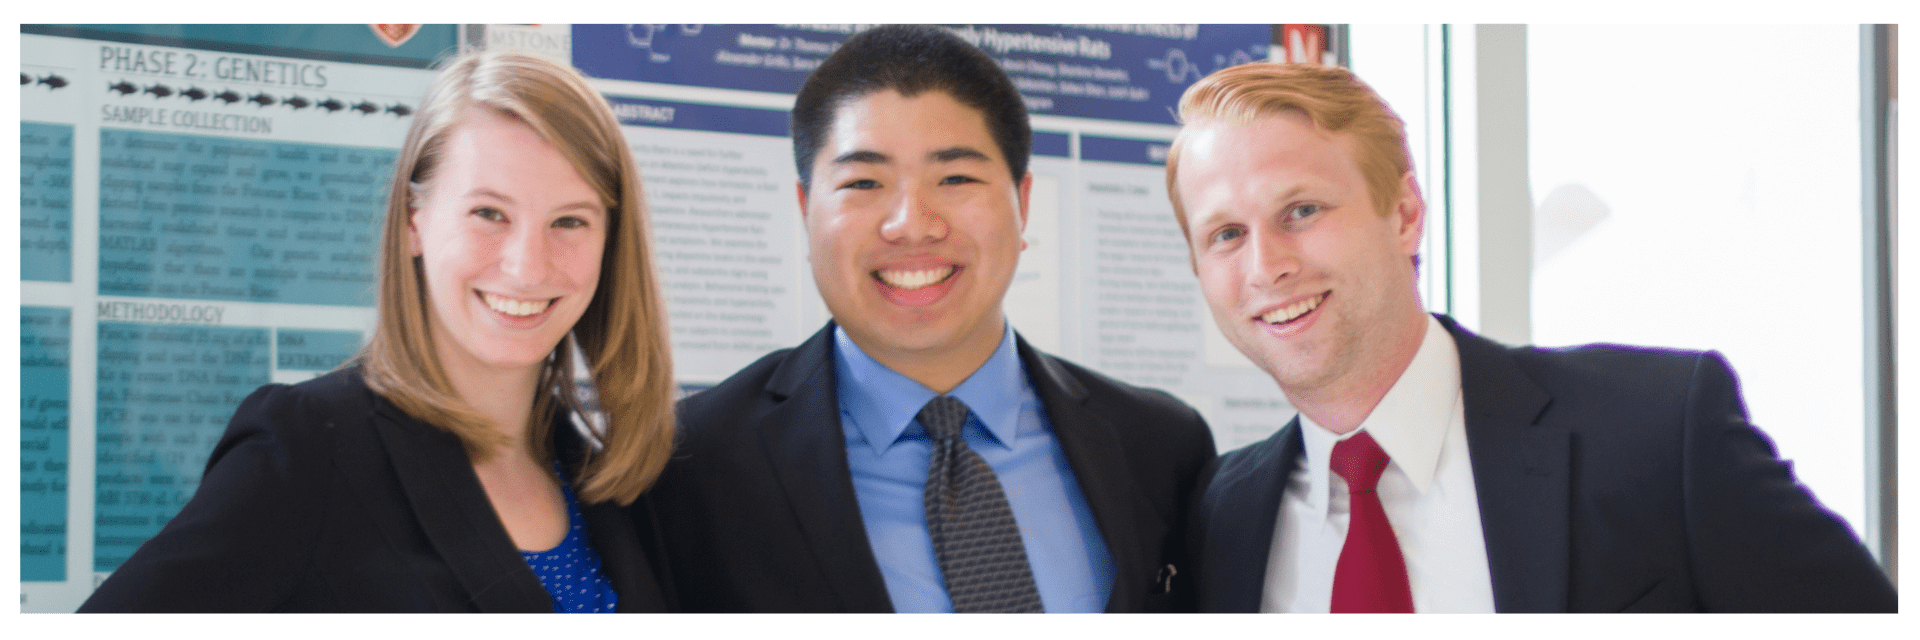 three students in business attire pose at thesis conference